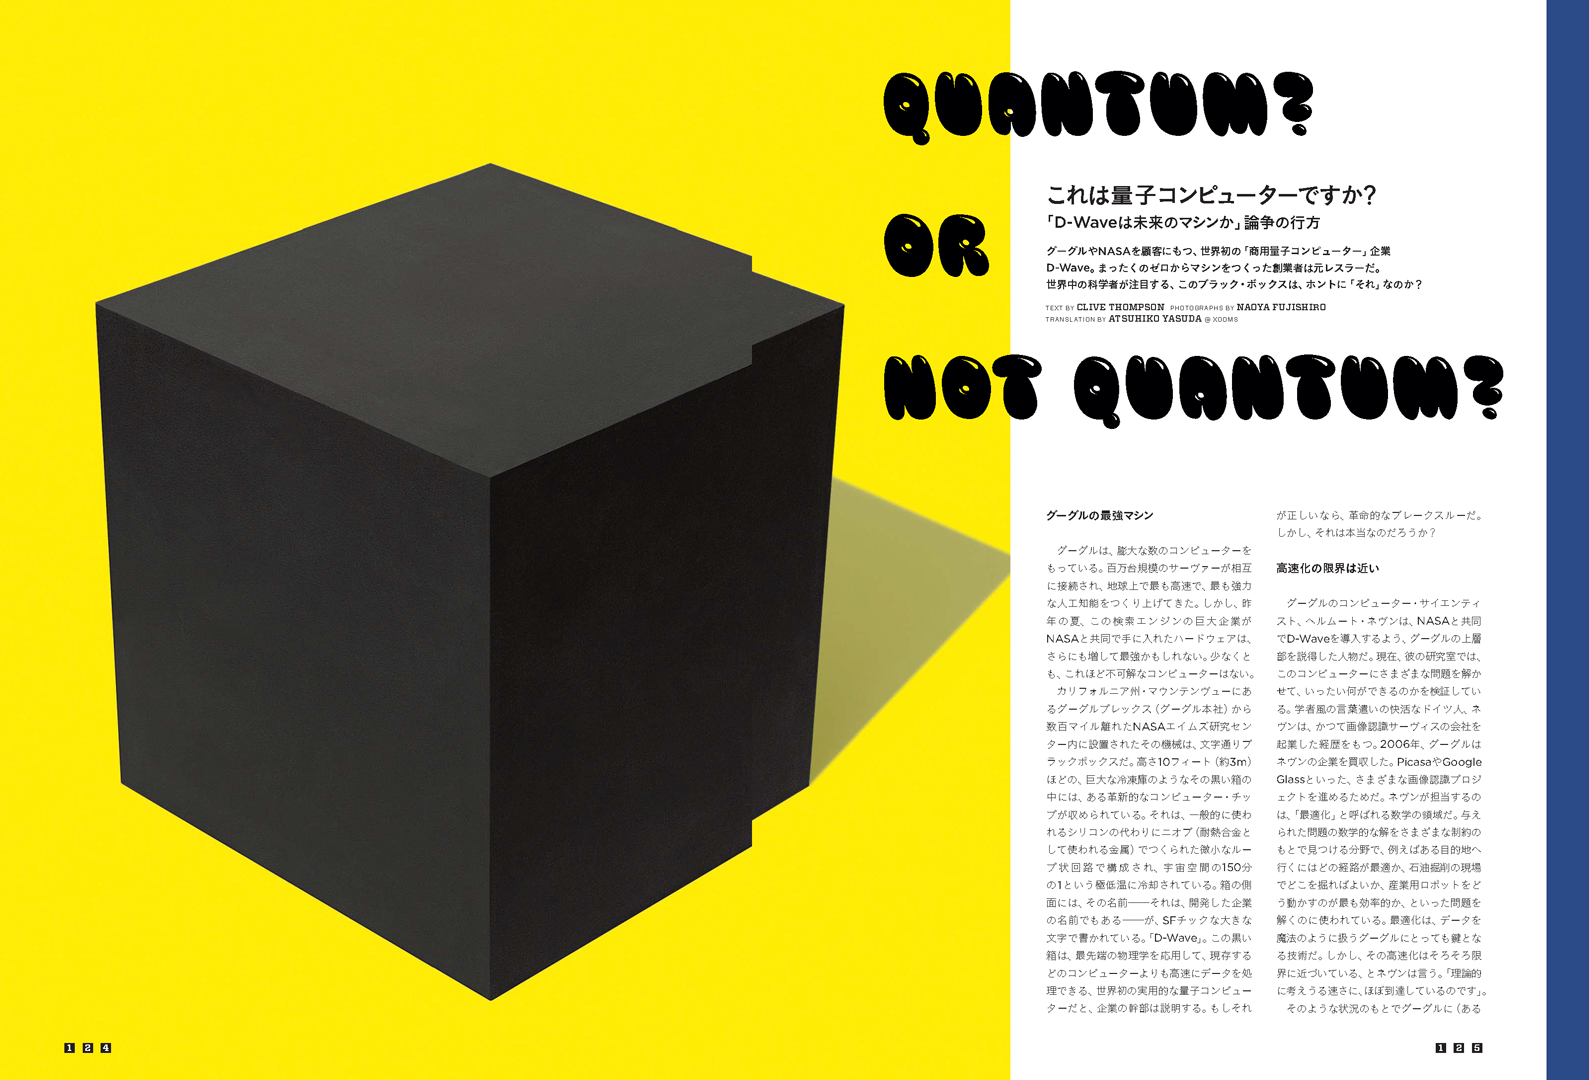 WIRED_VOL.14_D-Wave